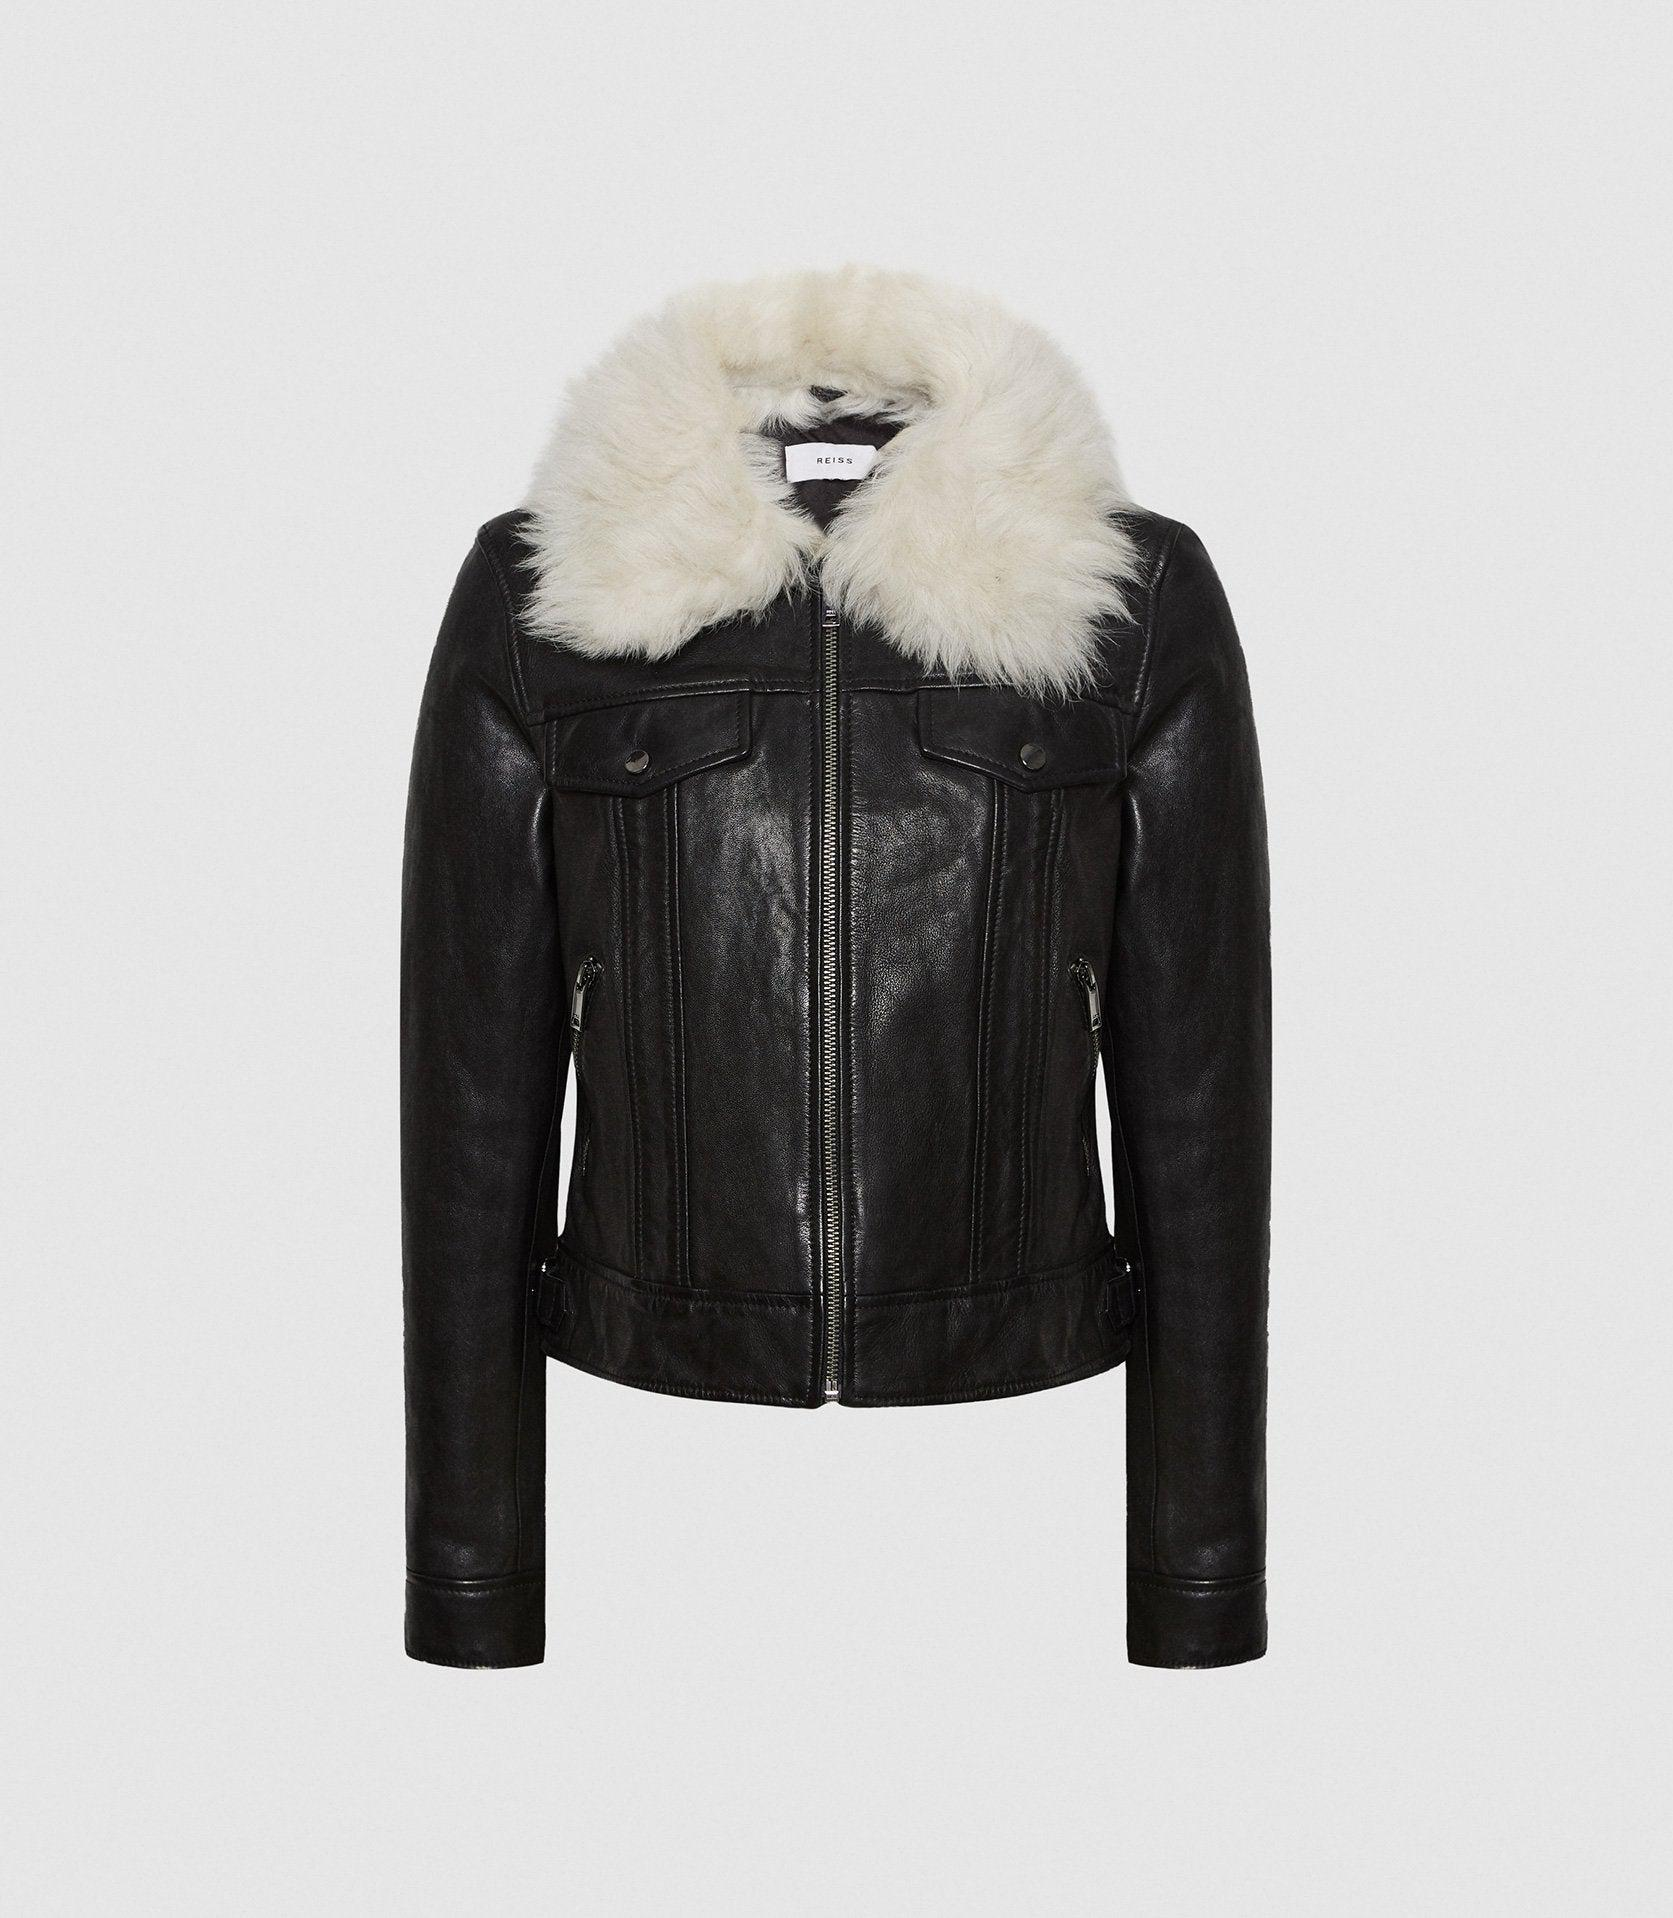 SHELLIE - LEATHER JACKET WITH SHEARING COLLAR 6